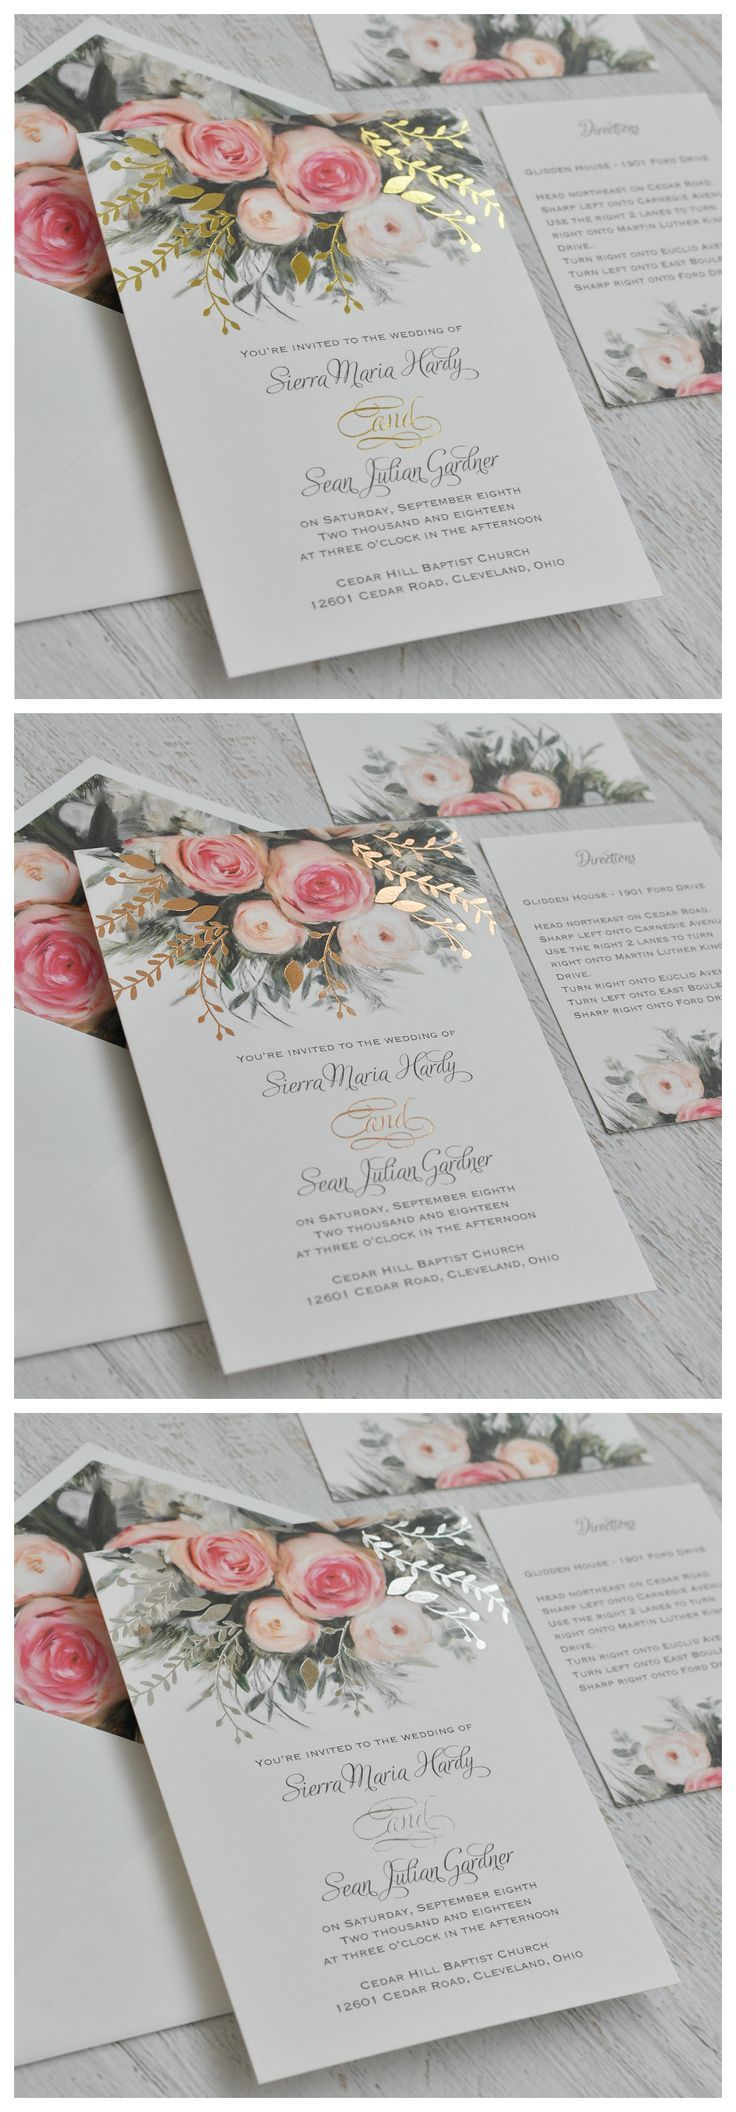 16 best wedding invitations frankie bear designs images on an ethereal illustration of watercolor roses in pink creates the peaceful nature of these beautiful garden wedding invitations your choice of gold monicamarmolfo Image collections